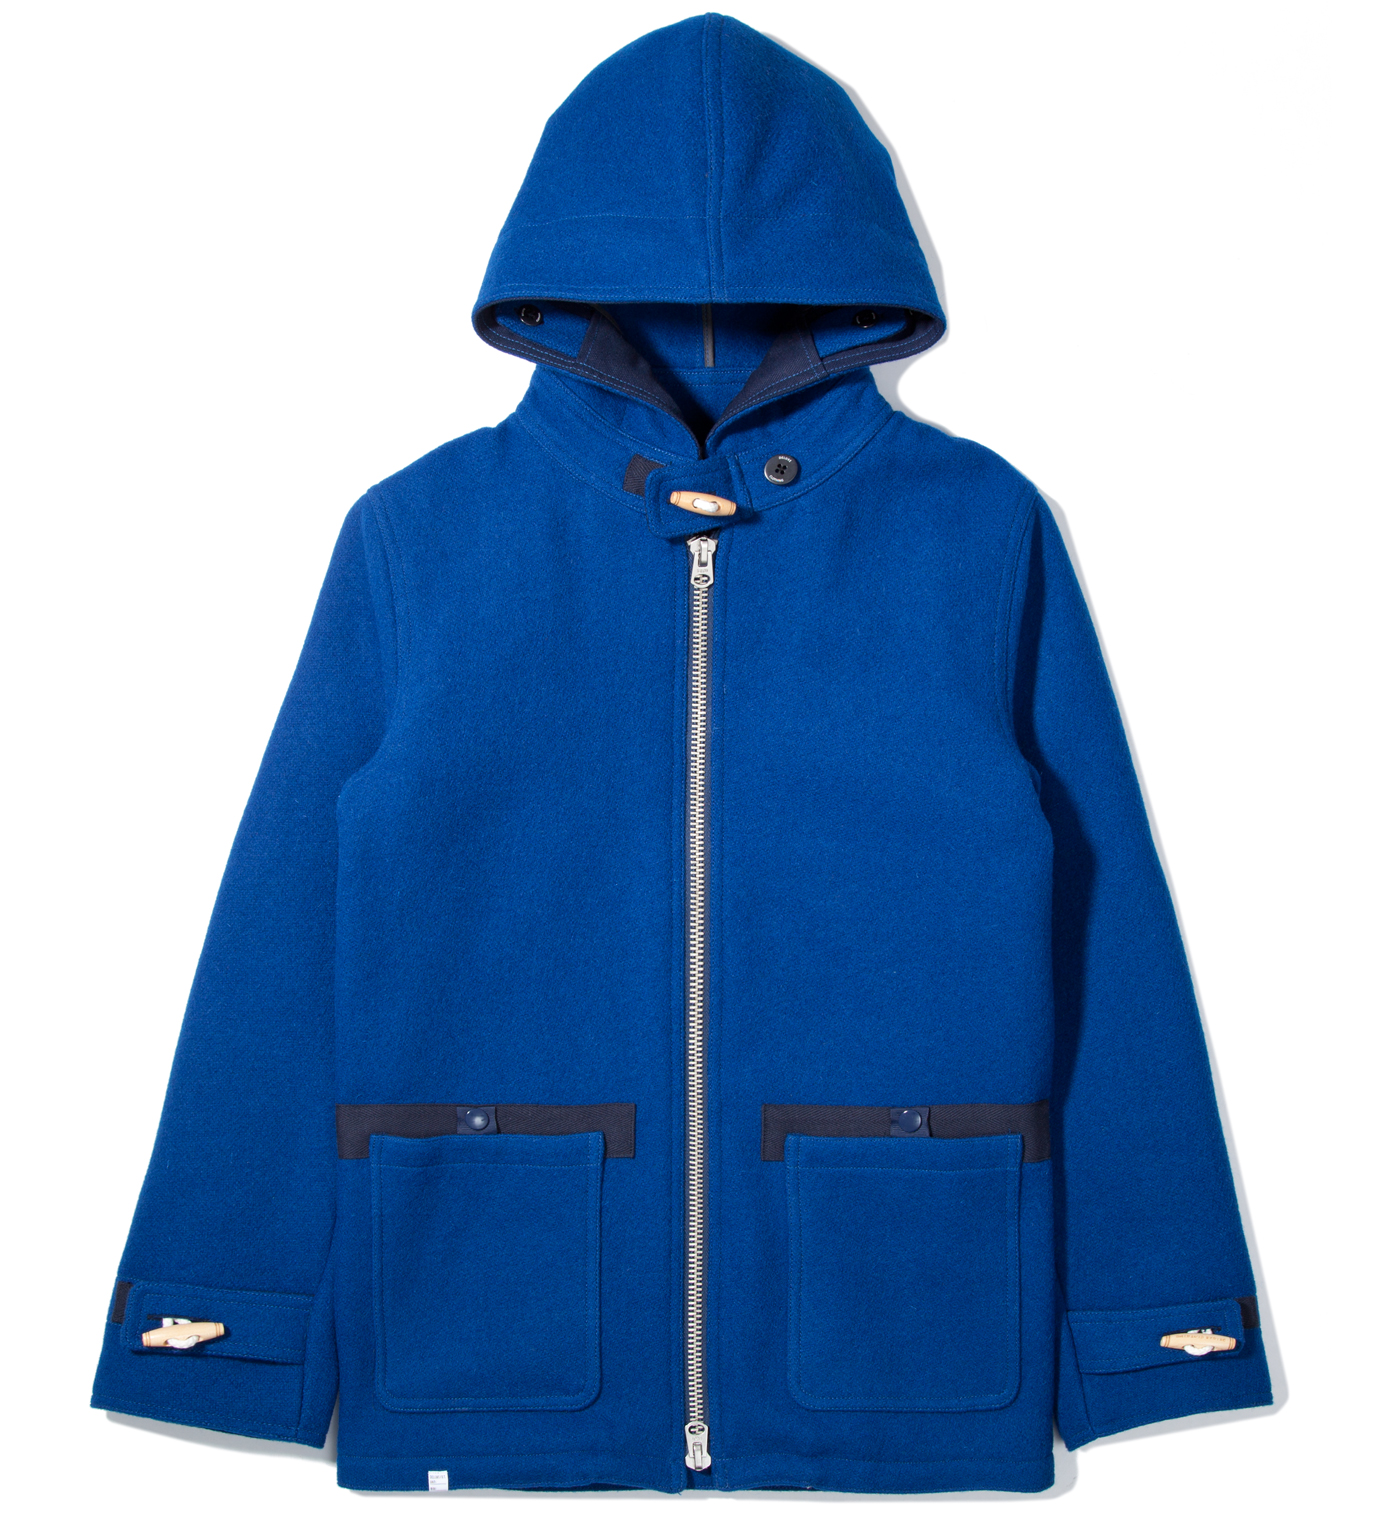 DELUXE Blue Long Journey Jacket